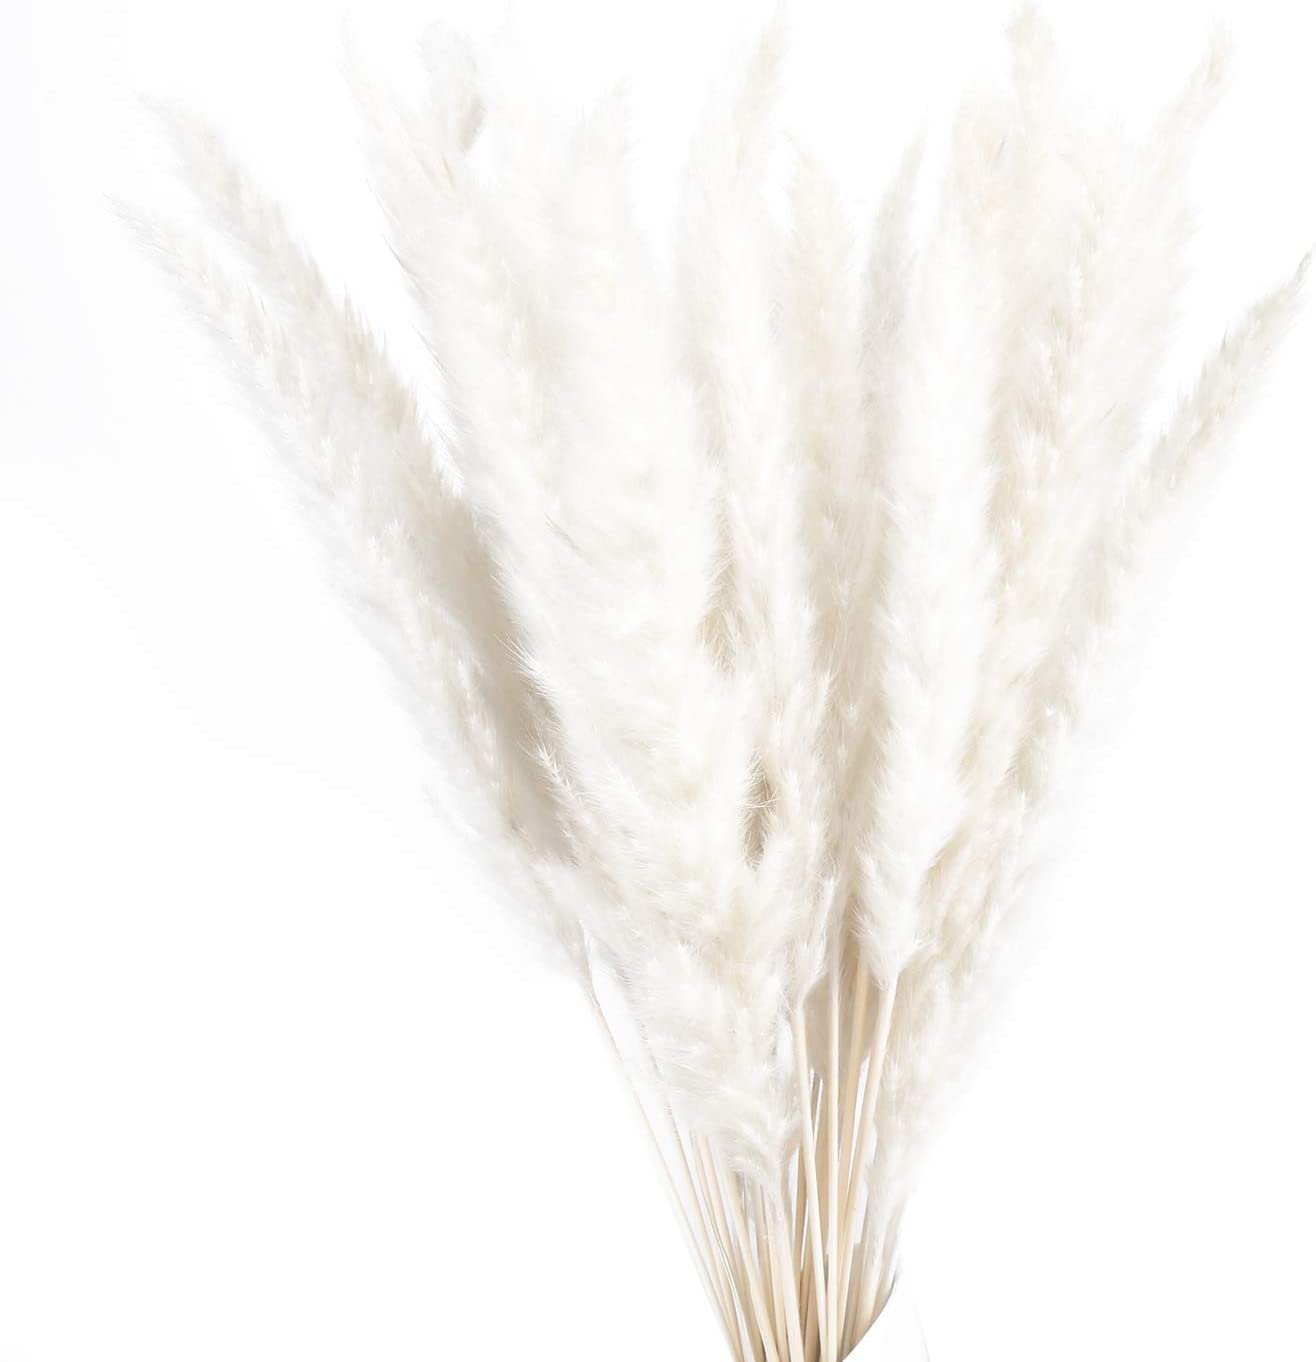 30pcs Natural Dried Pampas Grass,Reed Plumes,Phragmites Flower for Wedding Home Living Room Decor (White)